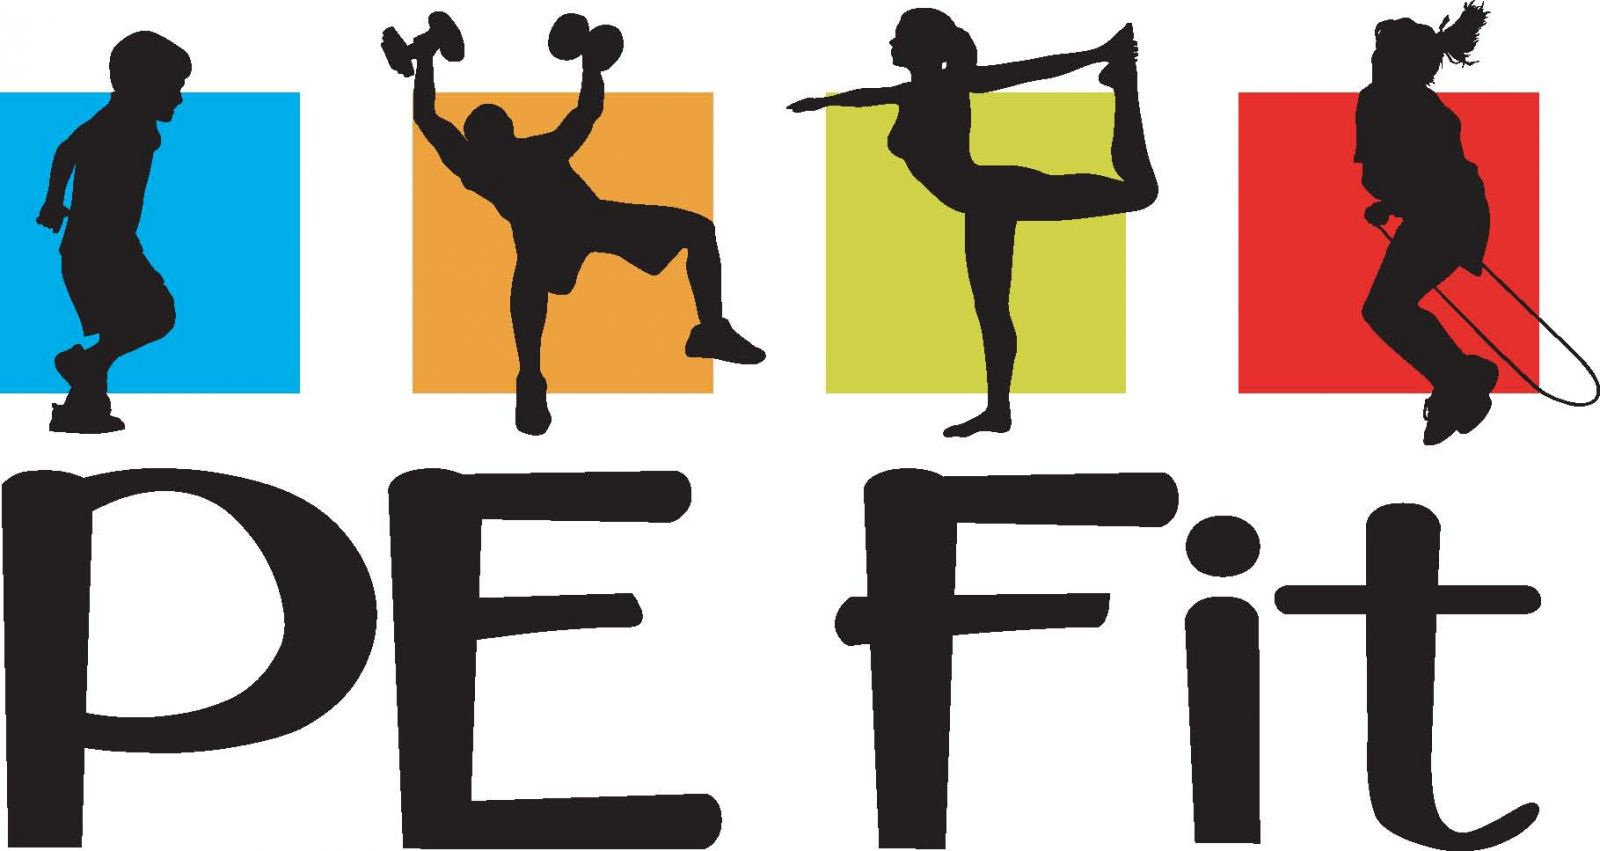 clipart download Fitness testing clipart. Workout physical test transparent